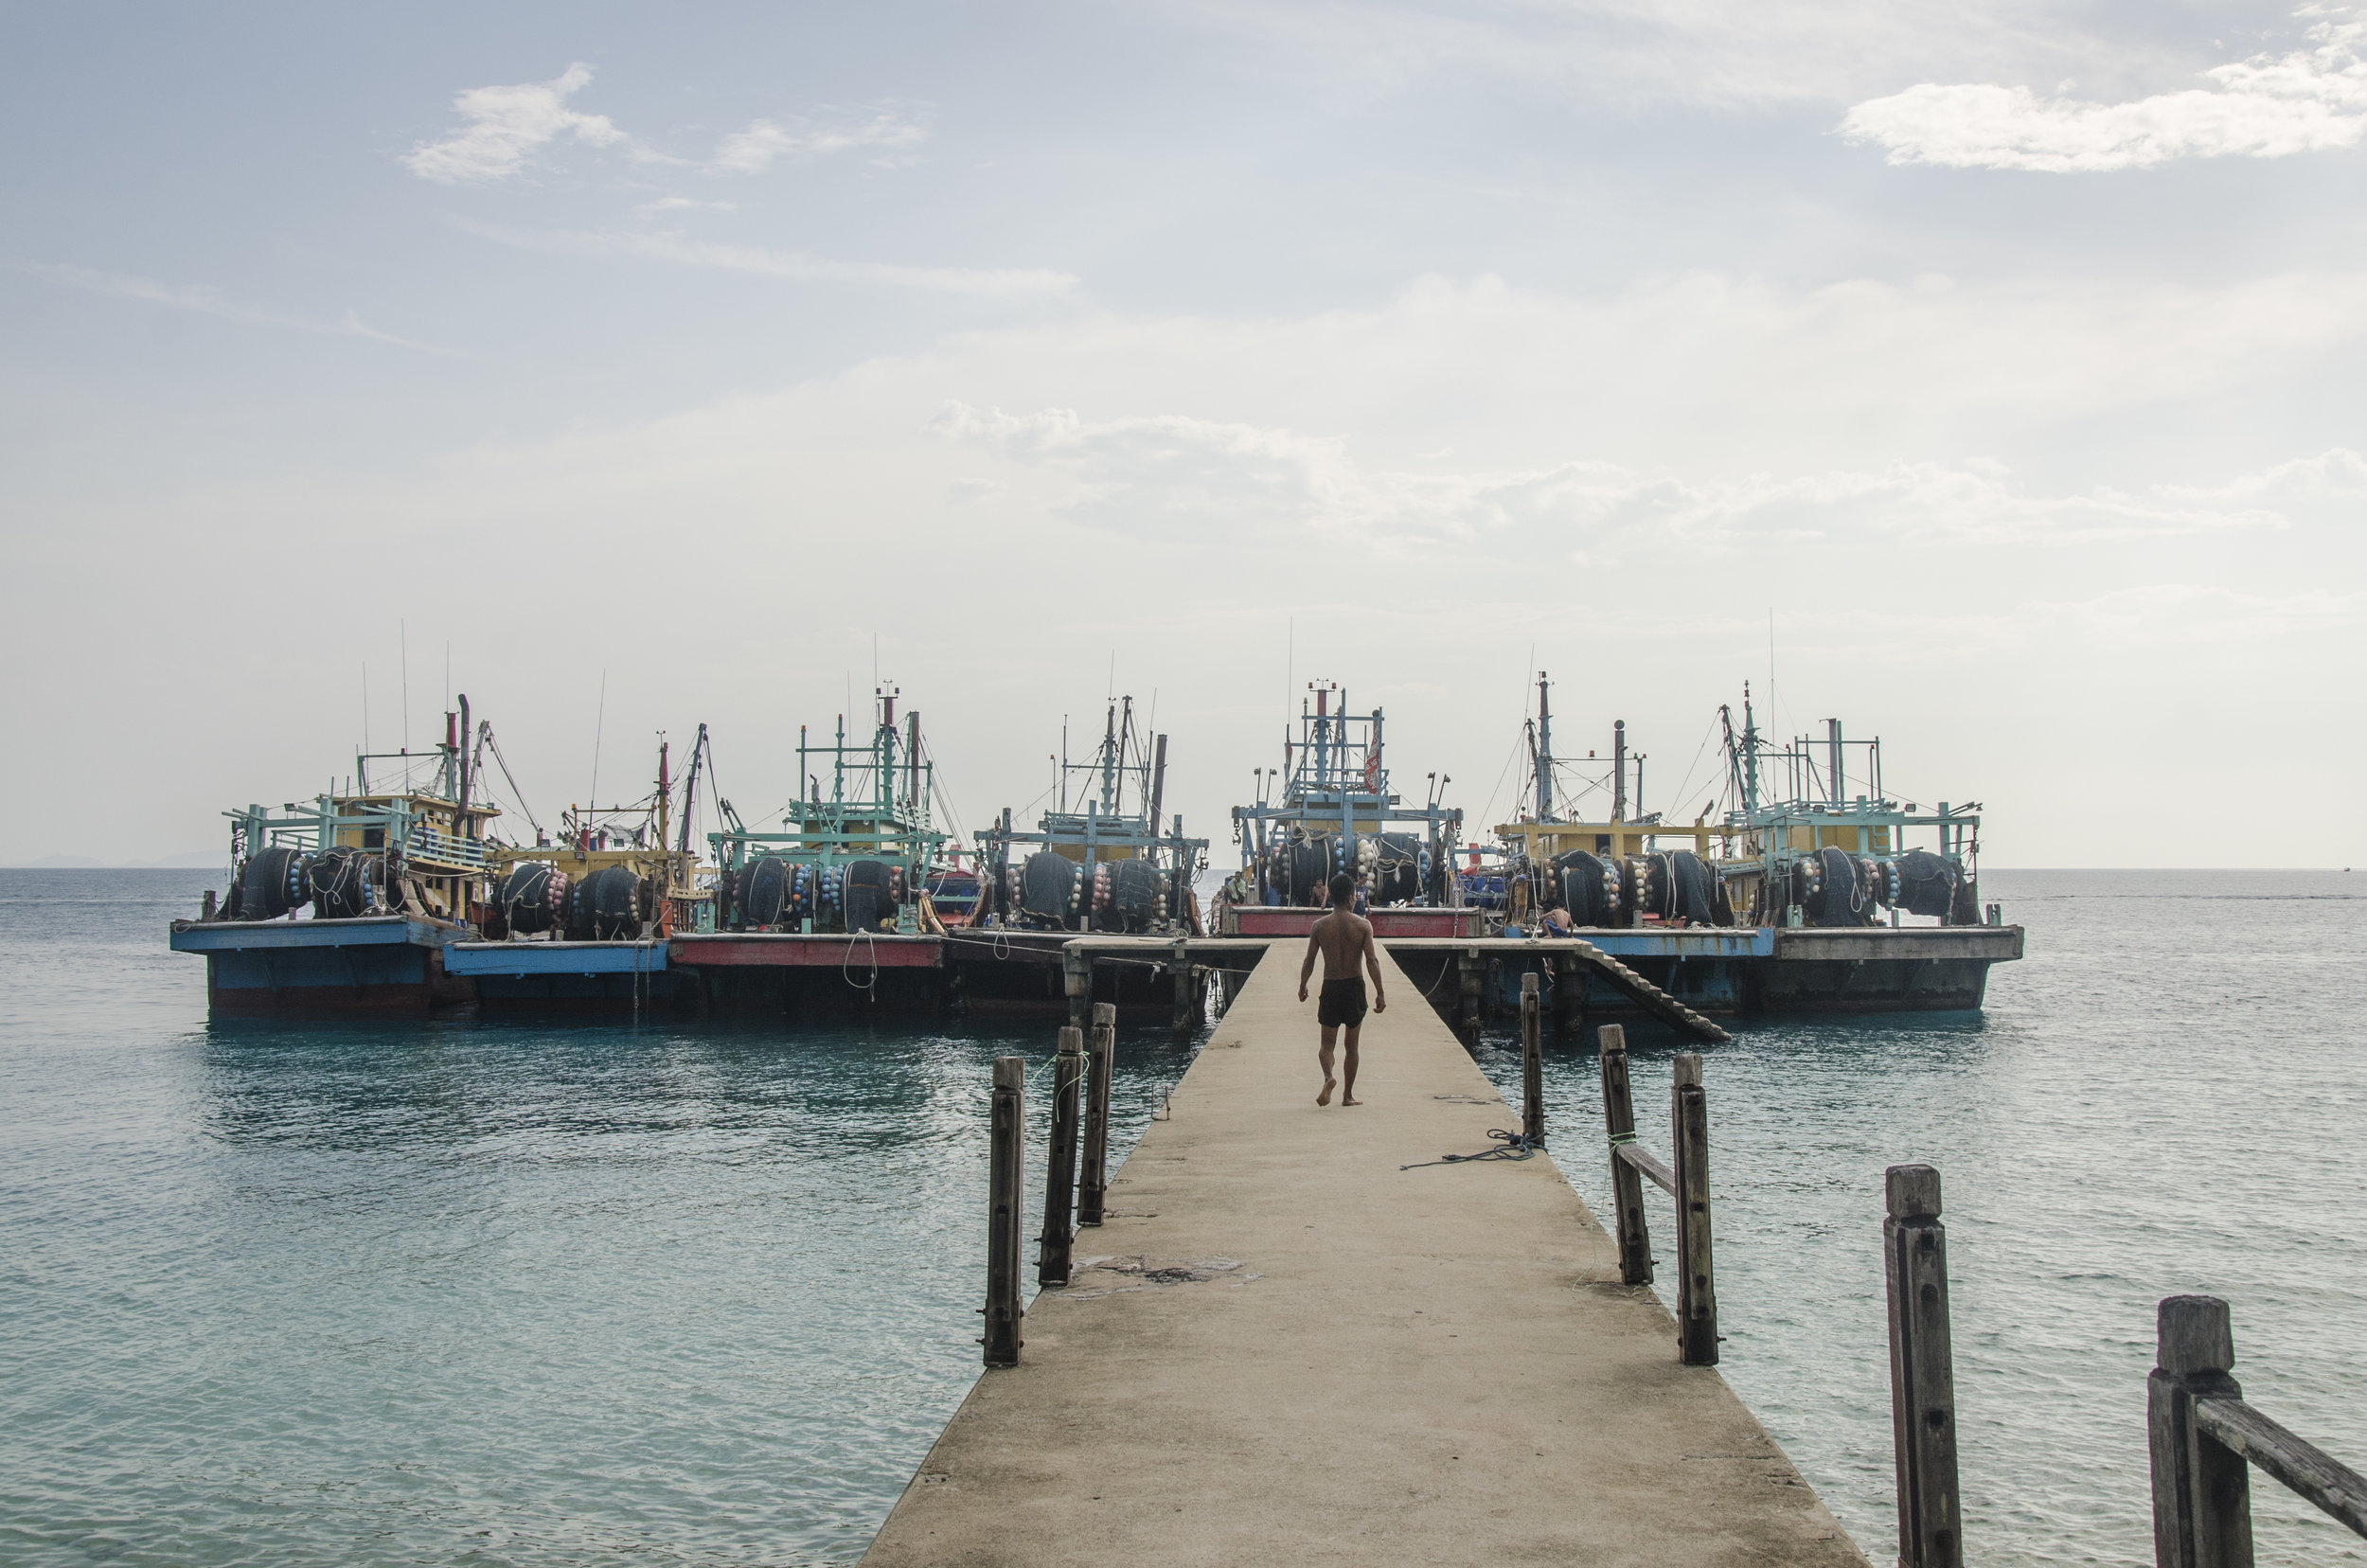 Fishing Boats Docked on the Perhentian Islands